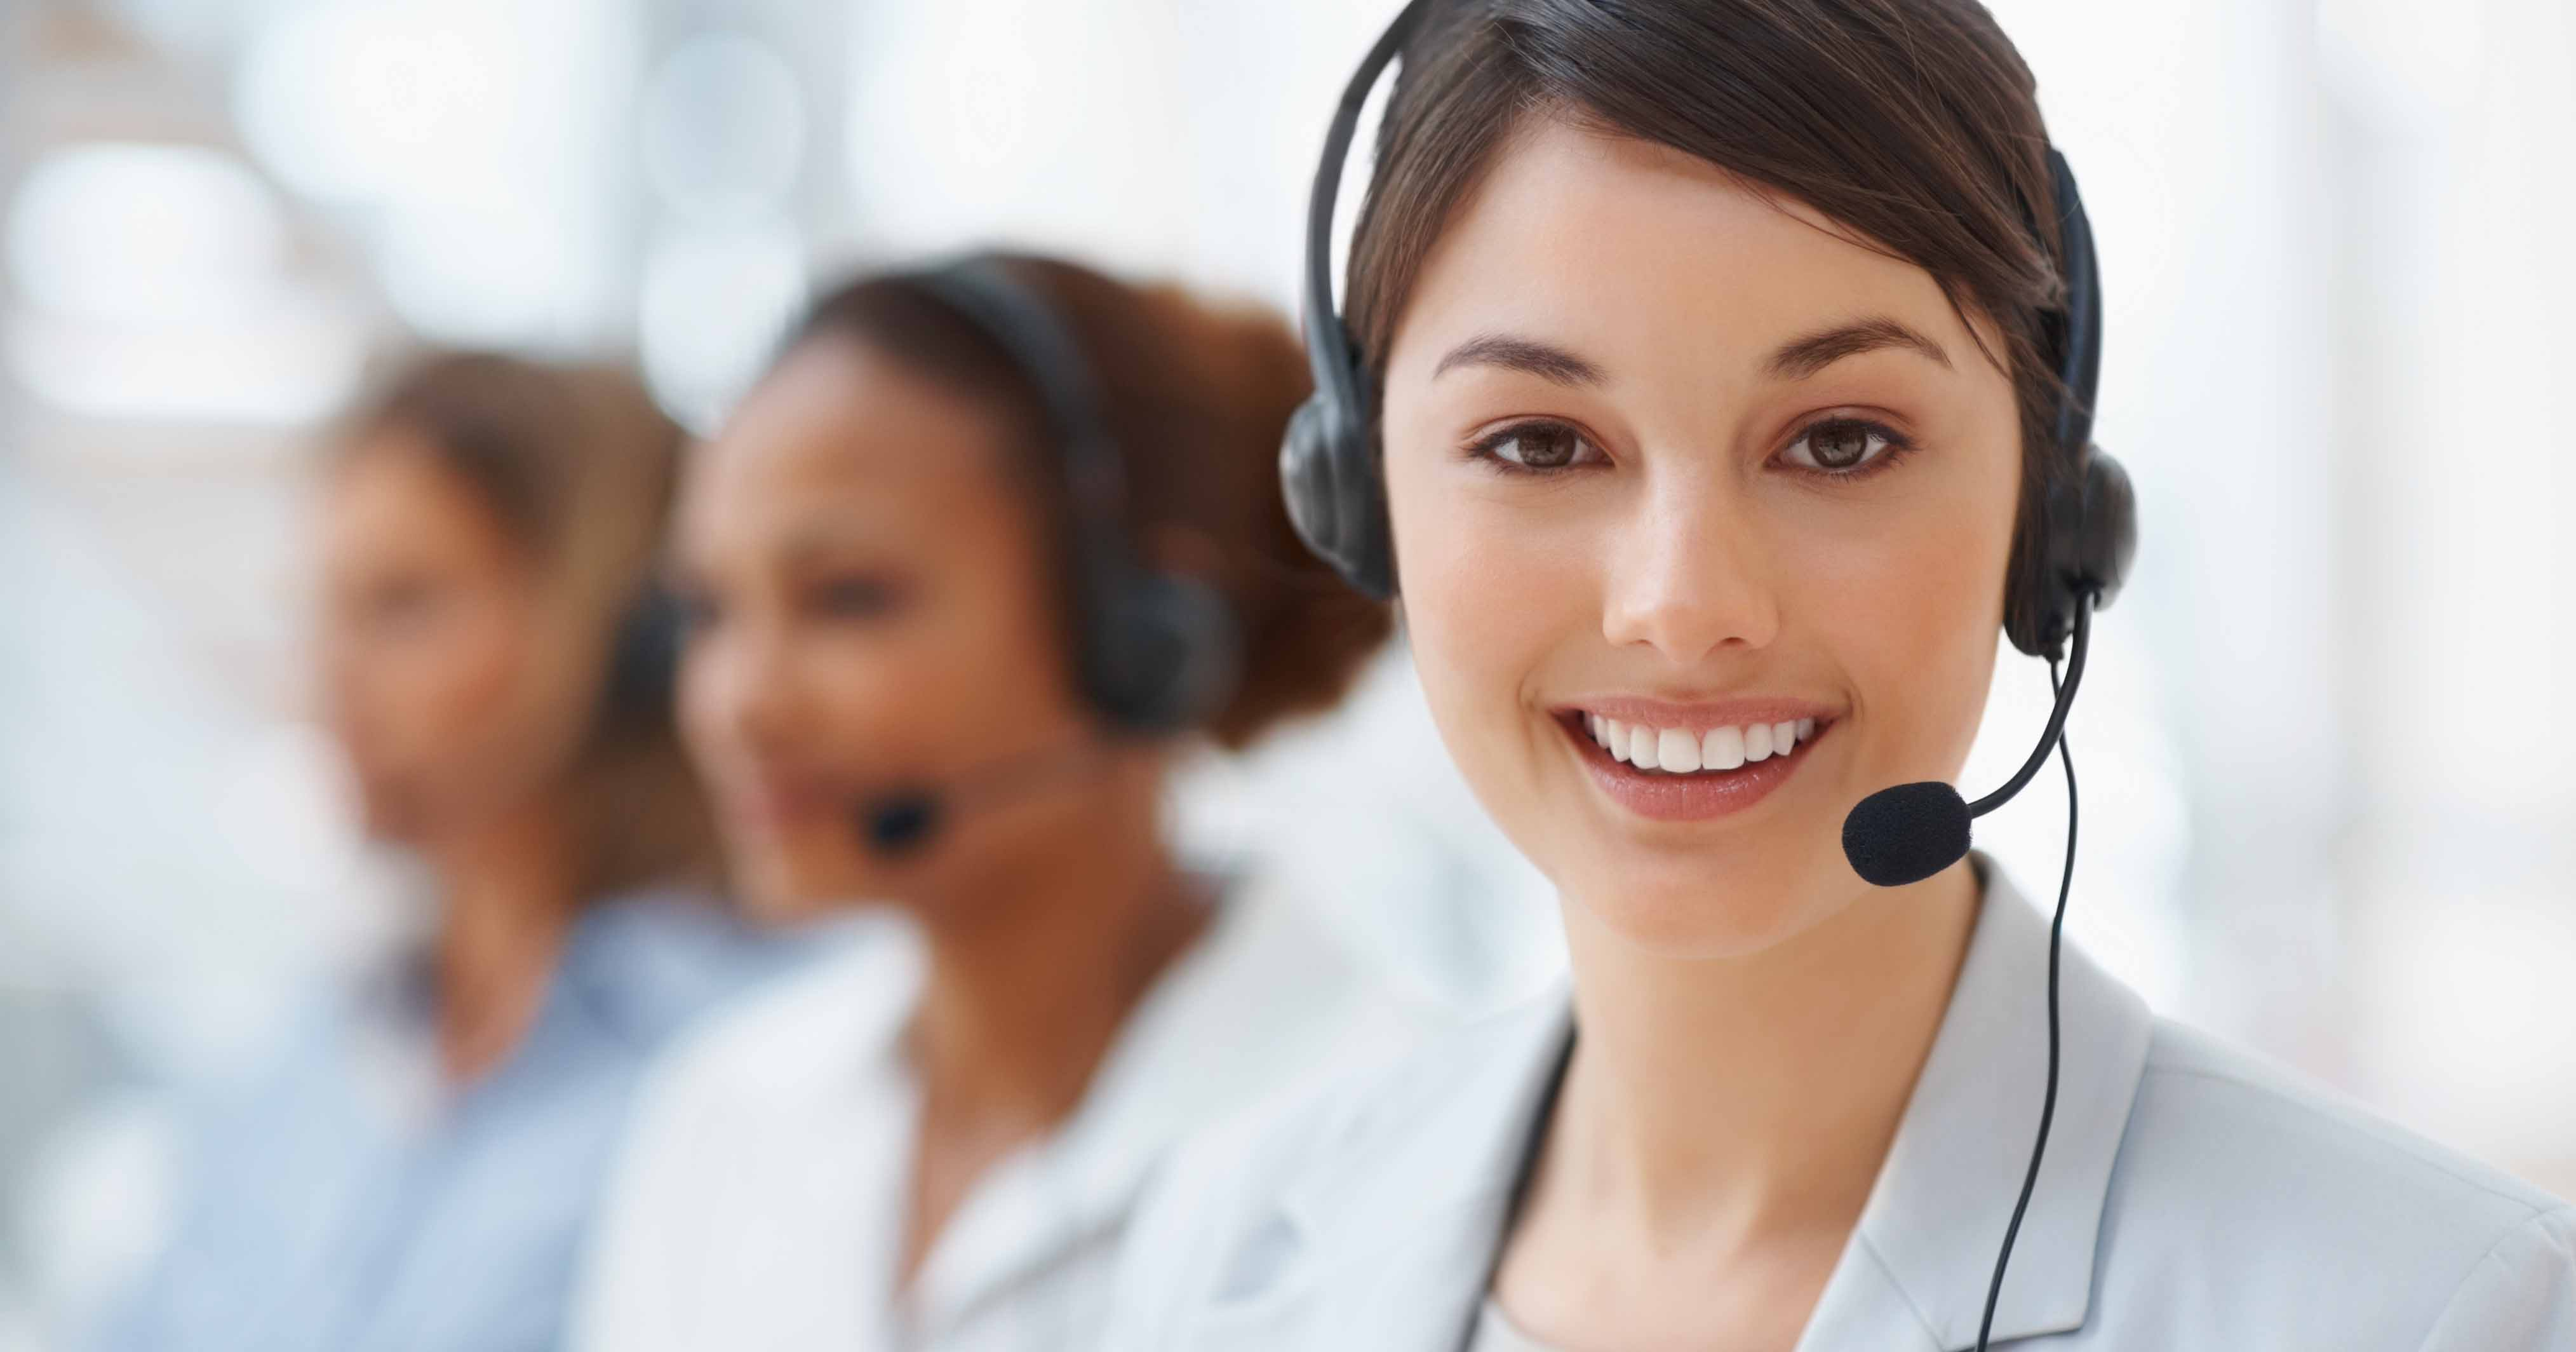 Image of a woman working in a call centre, smiling.